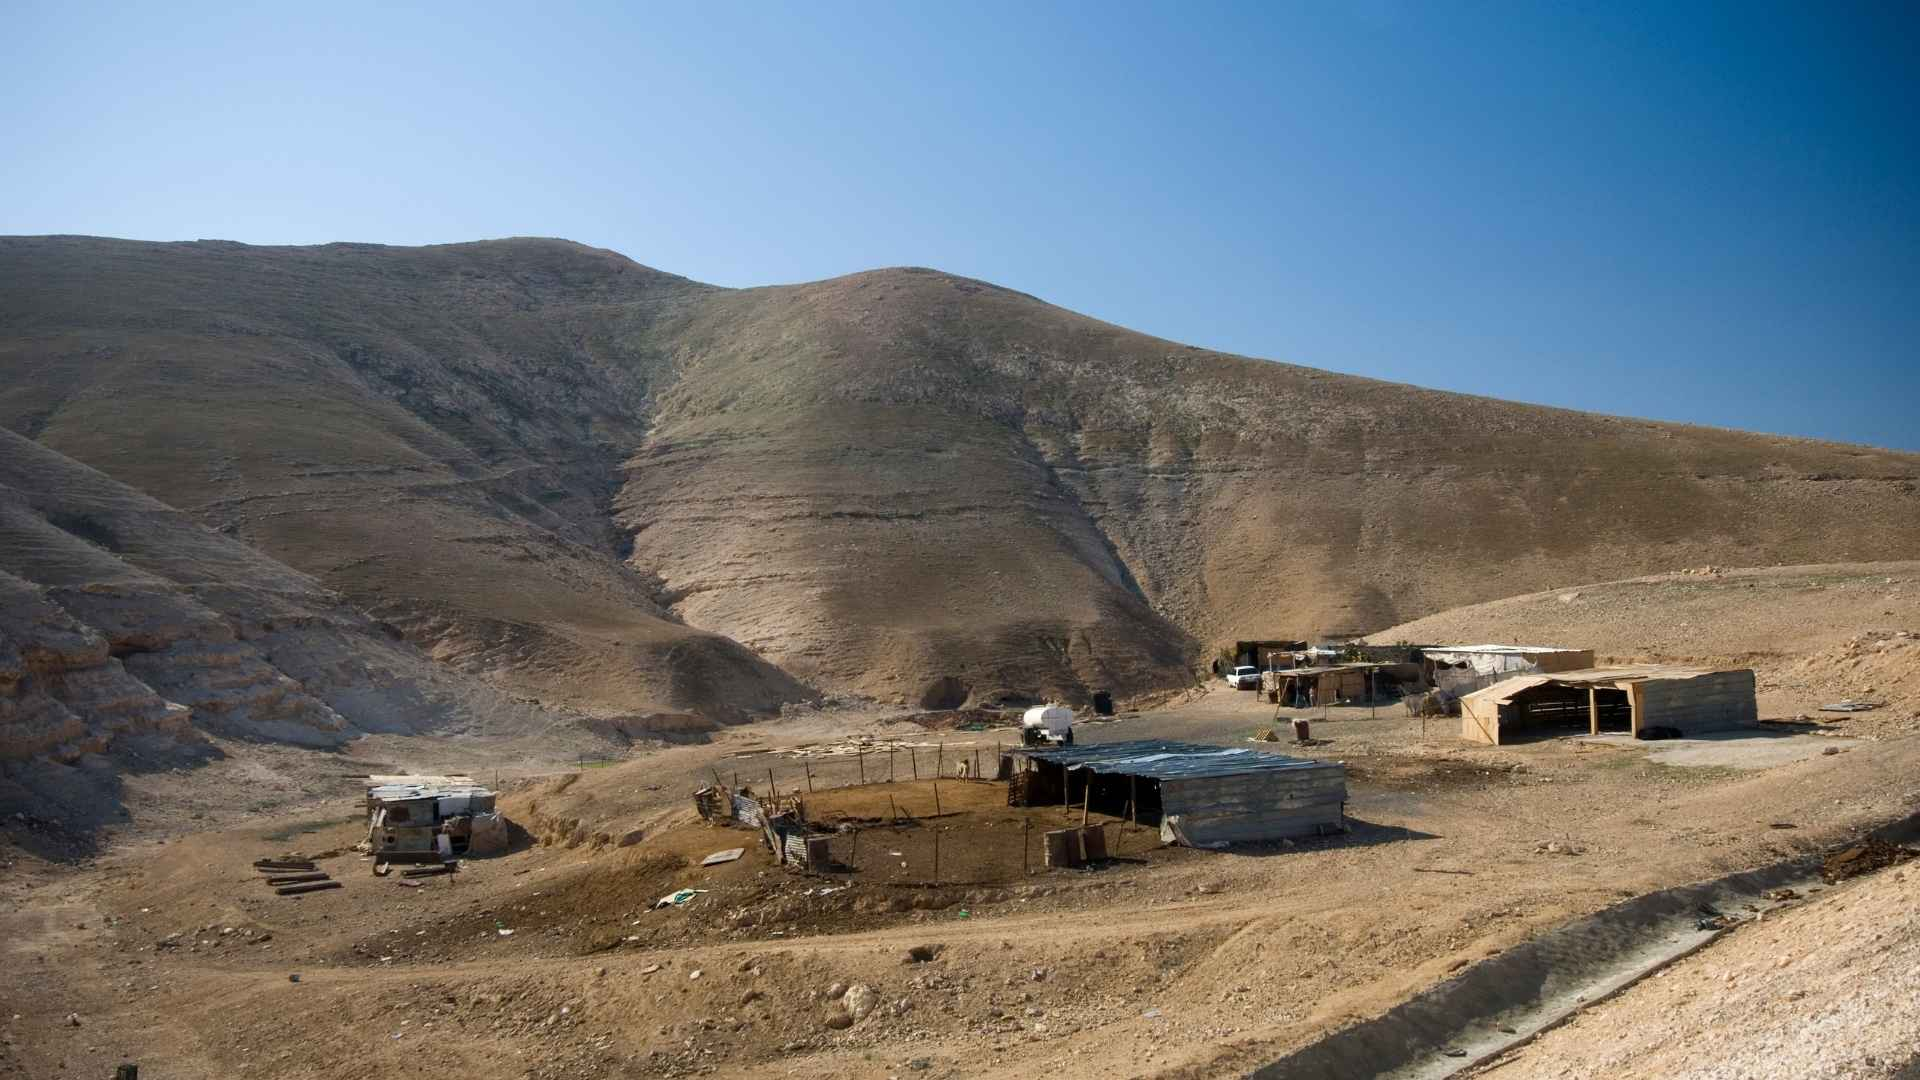 Beduin settlement in the Negev